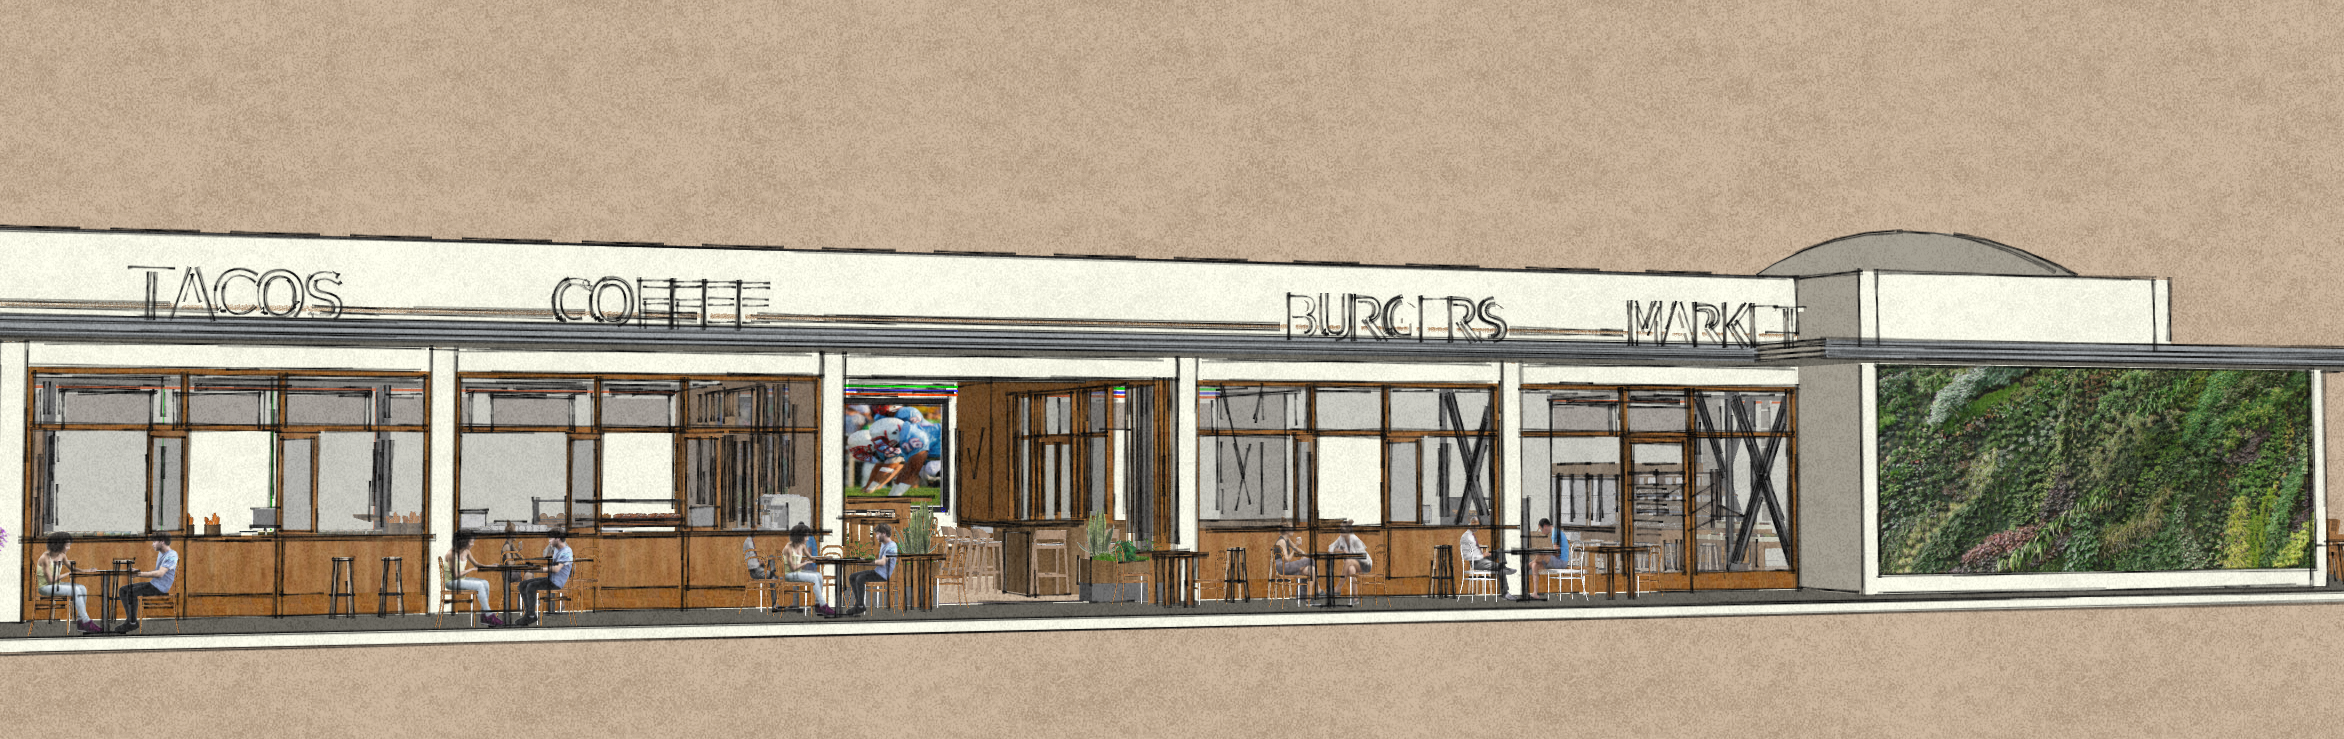 Conceptual North Elevation of Phase 1 of Historic Food City Building.  This image was created by Kelly & Morgan Architects for exclusive use by Grub LLC. All Rights Reserved.